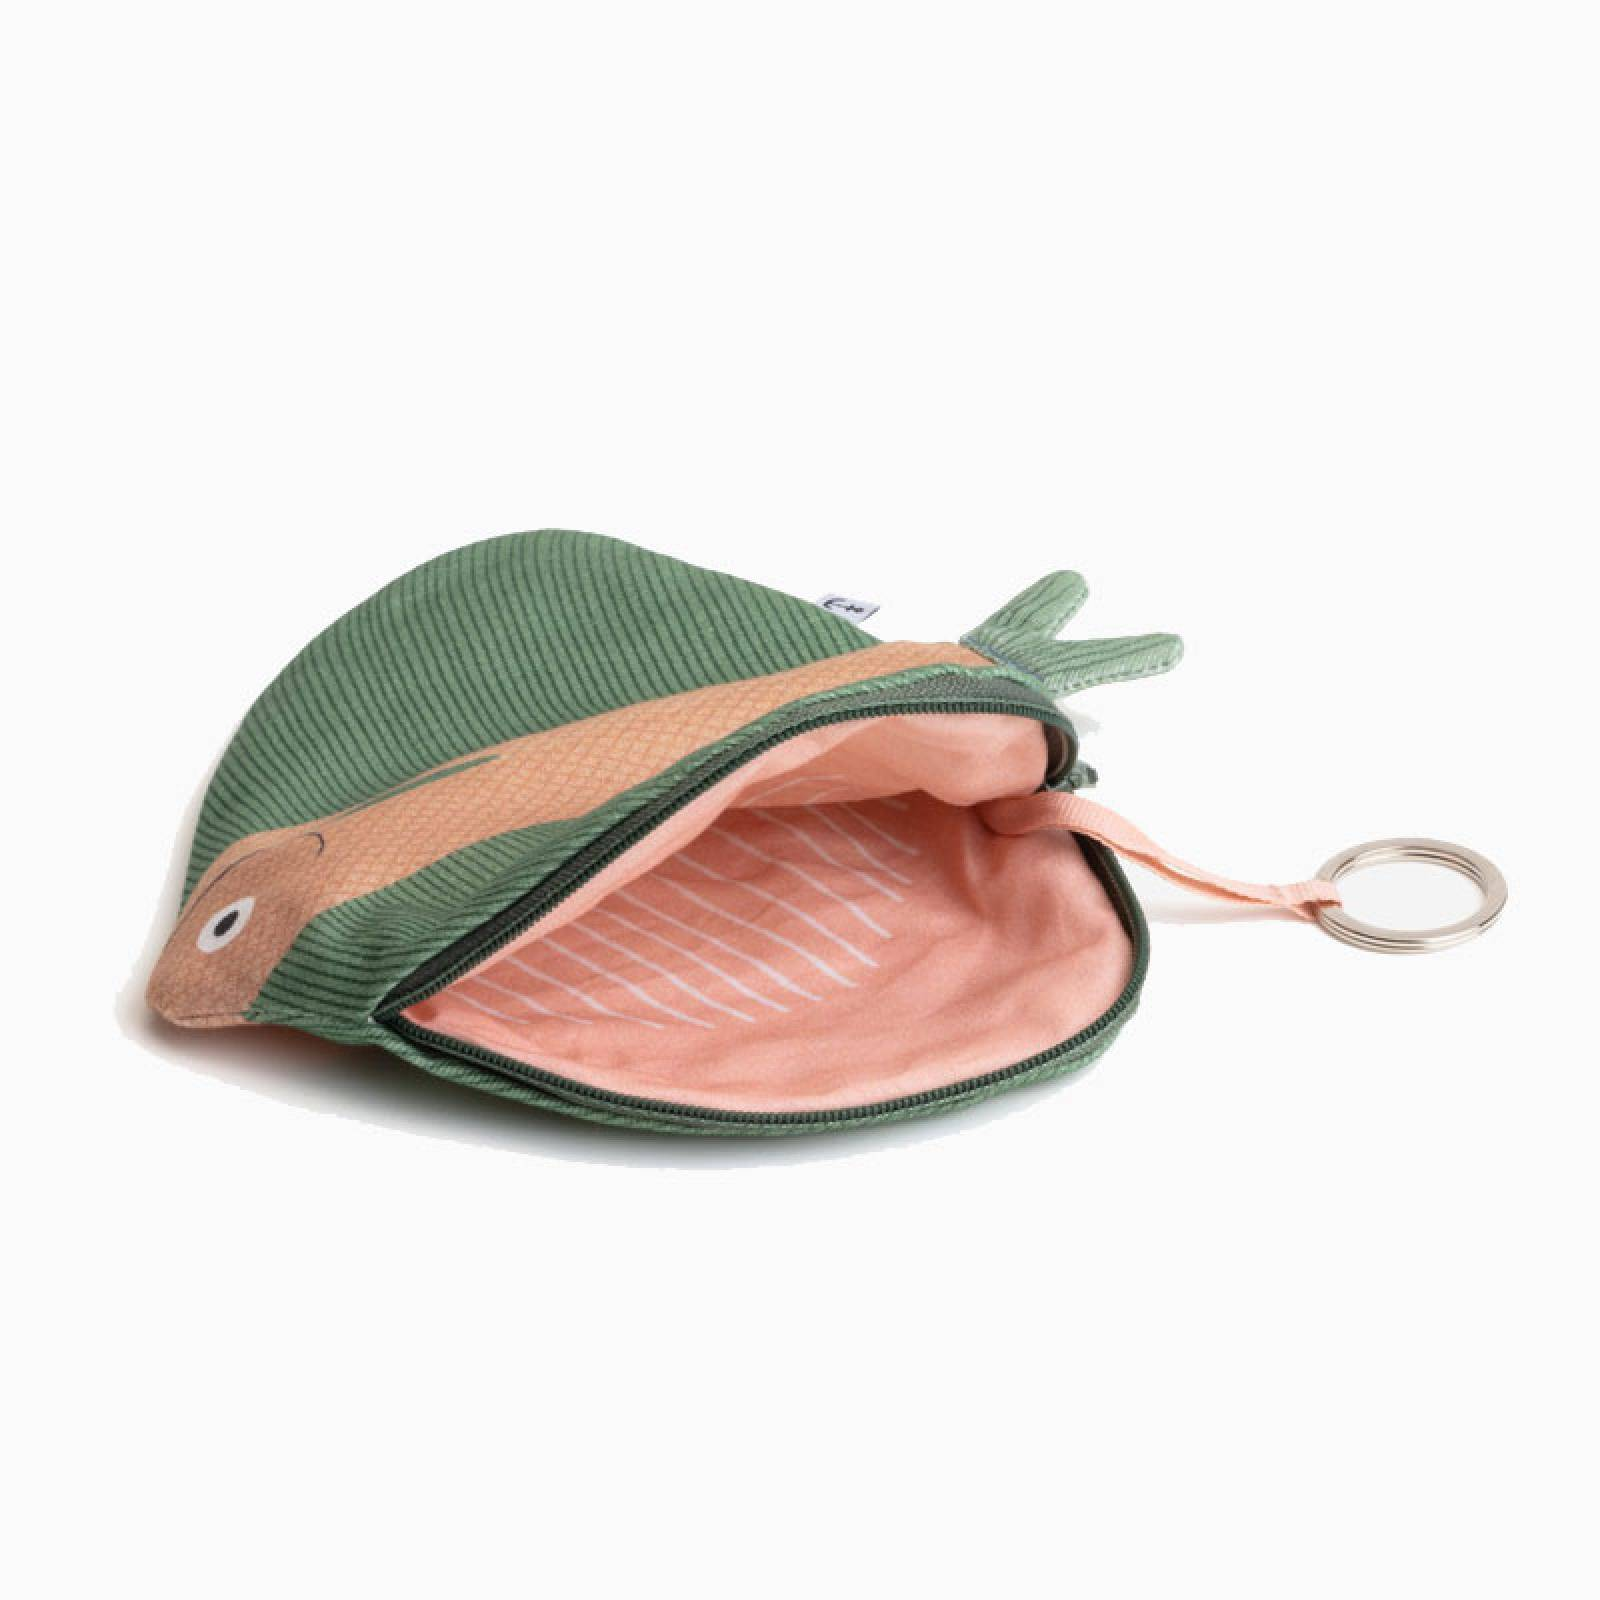 Zipped Fish Pouch By Don Fisher - Green Fanfish thumbnails